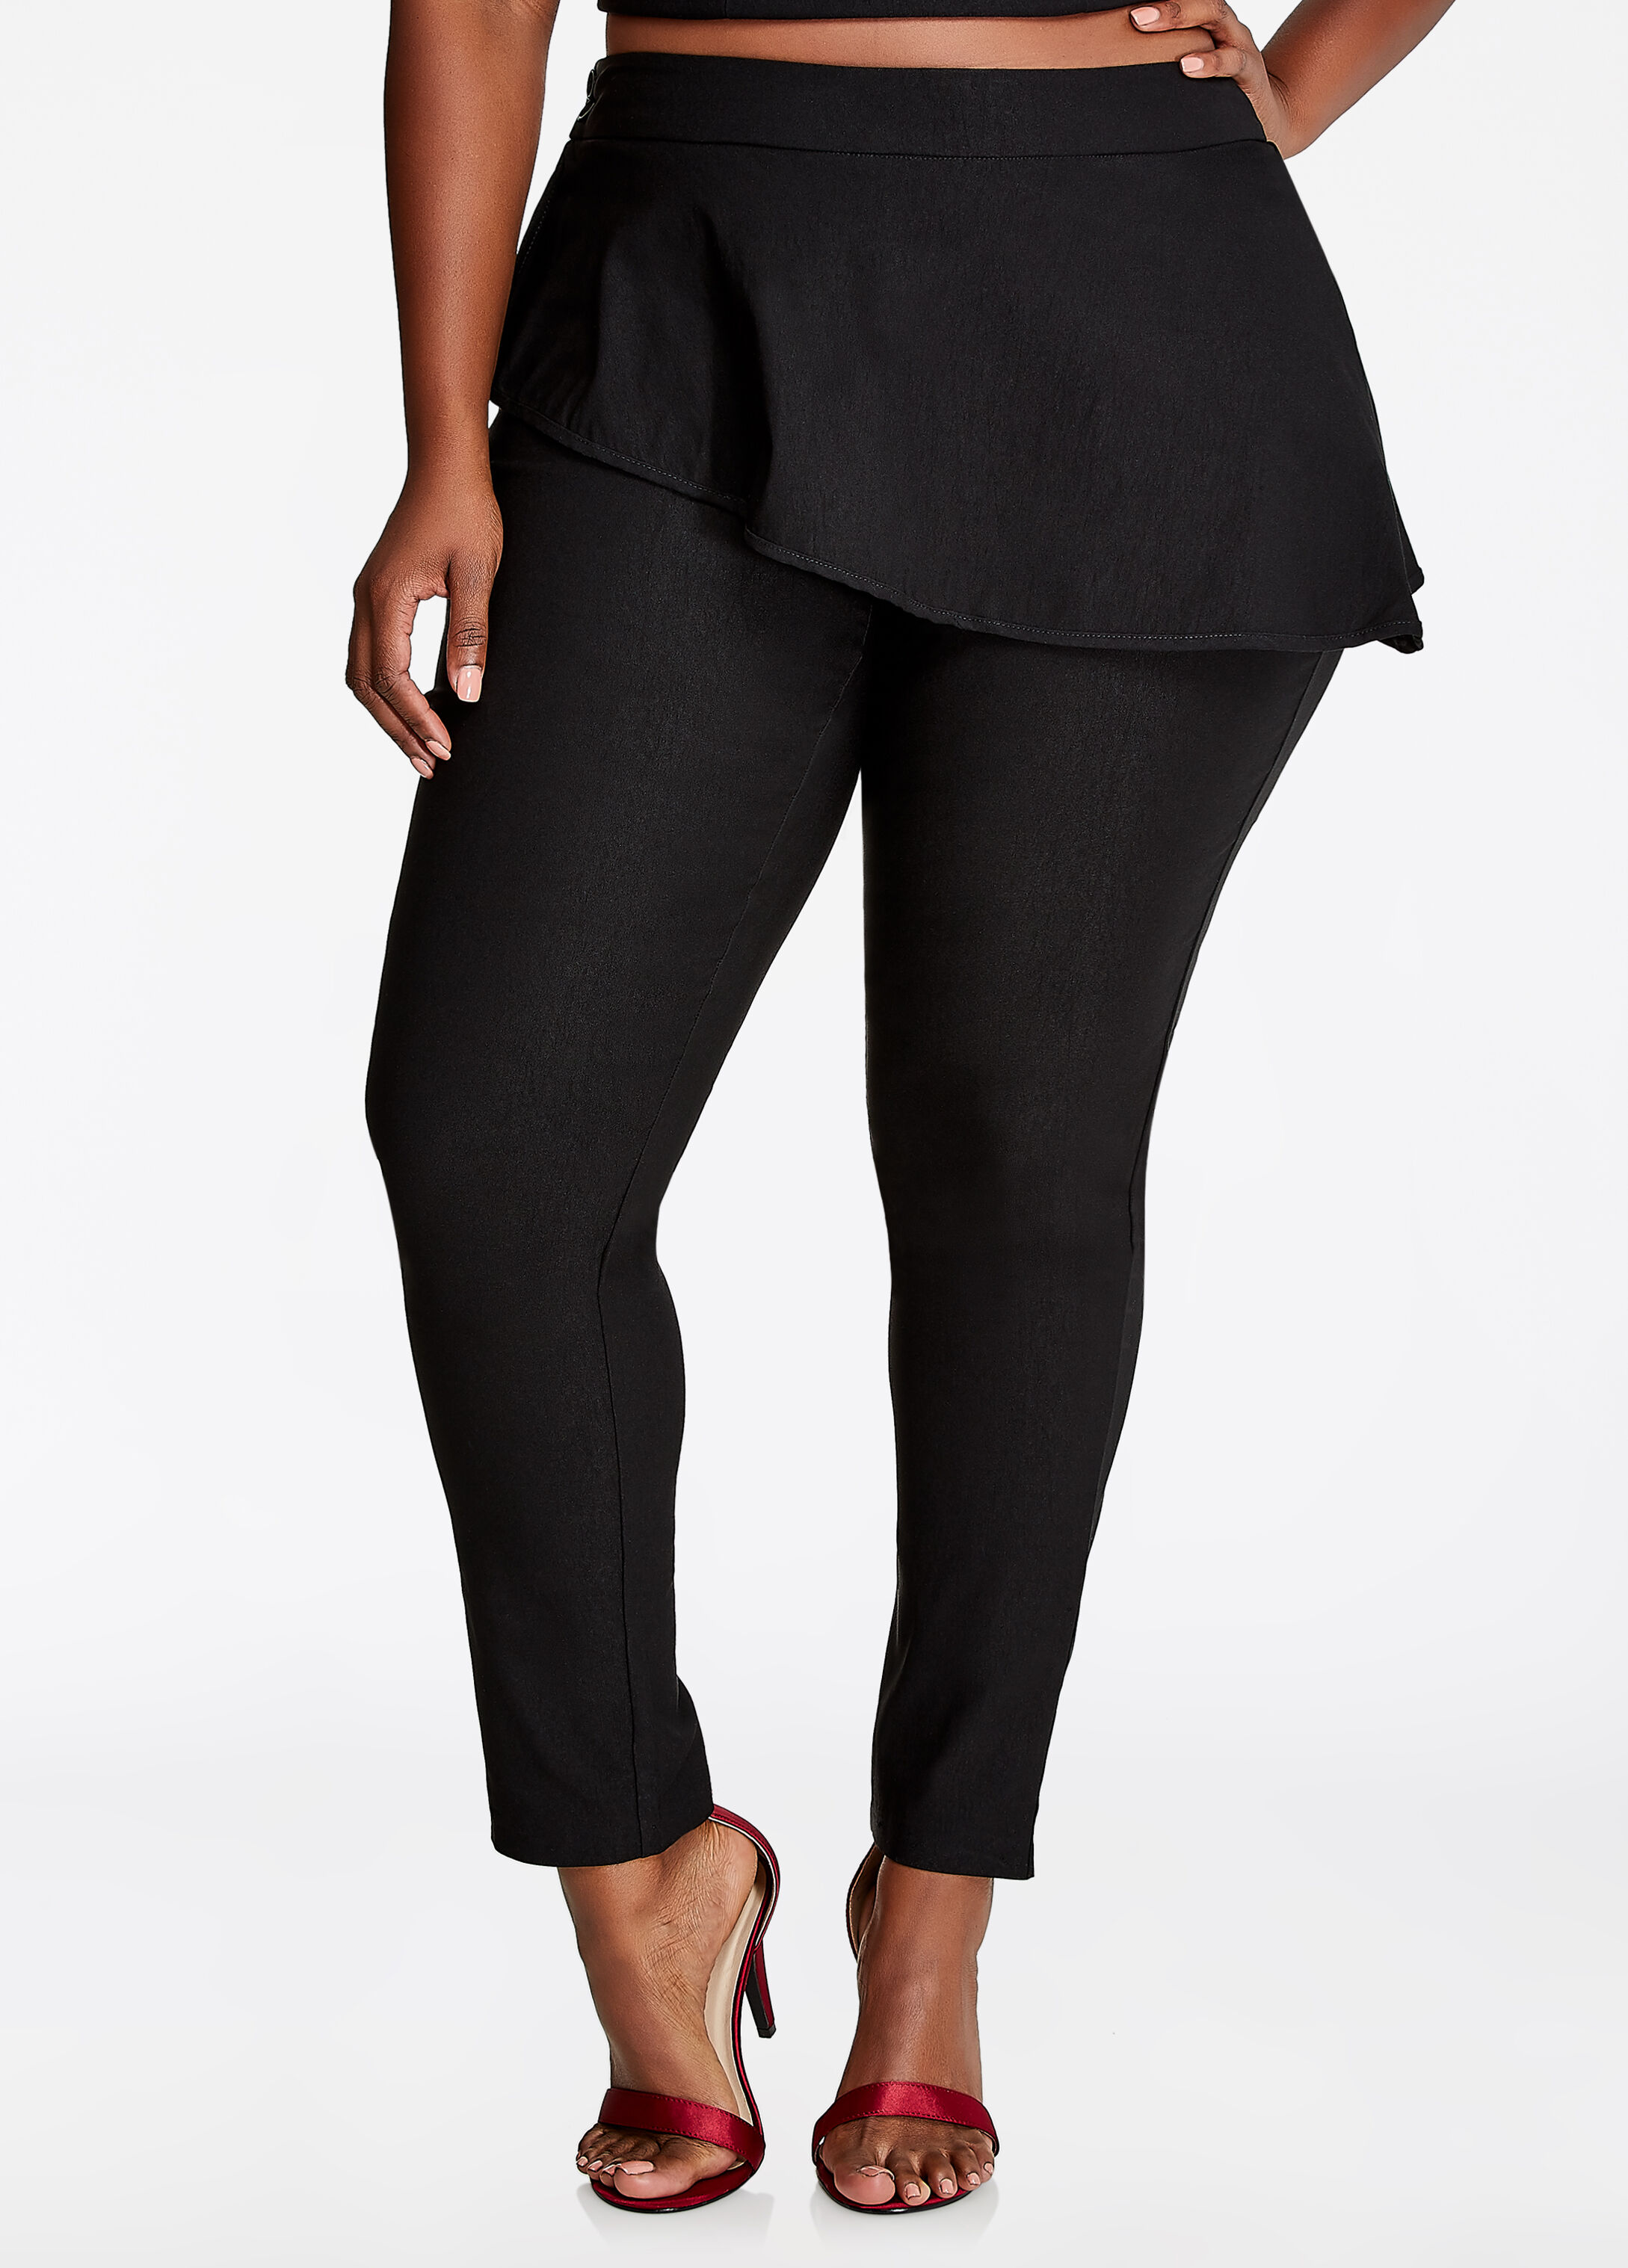 Peplum Skinny Pant Black - Bottoms